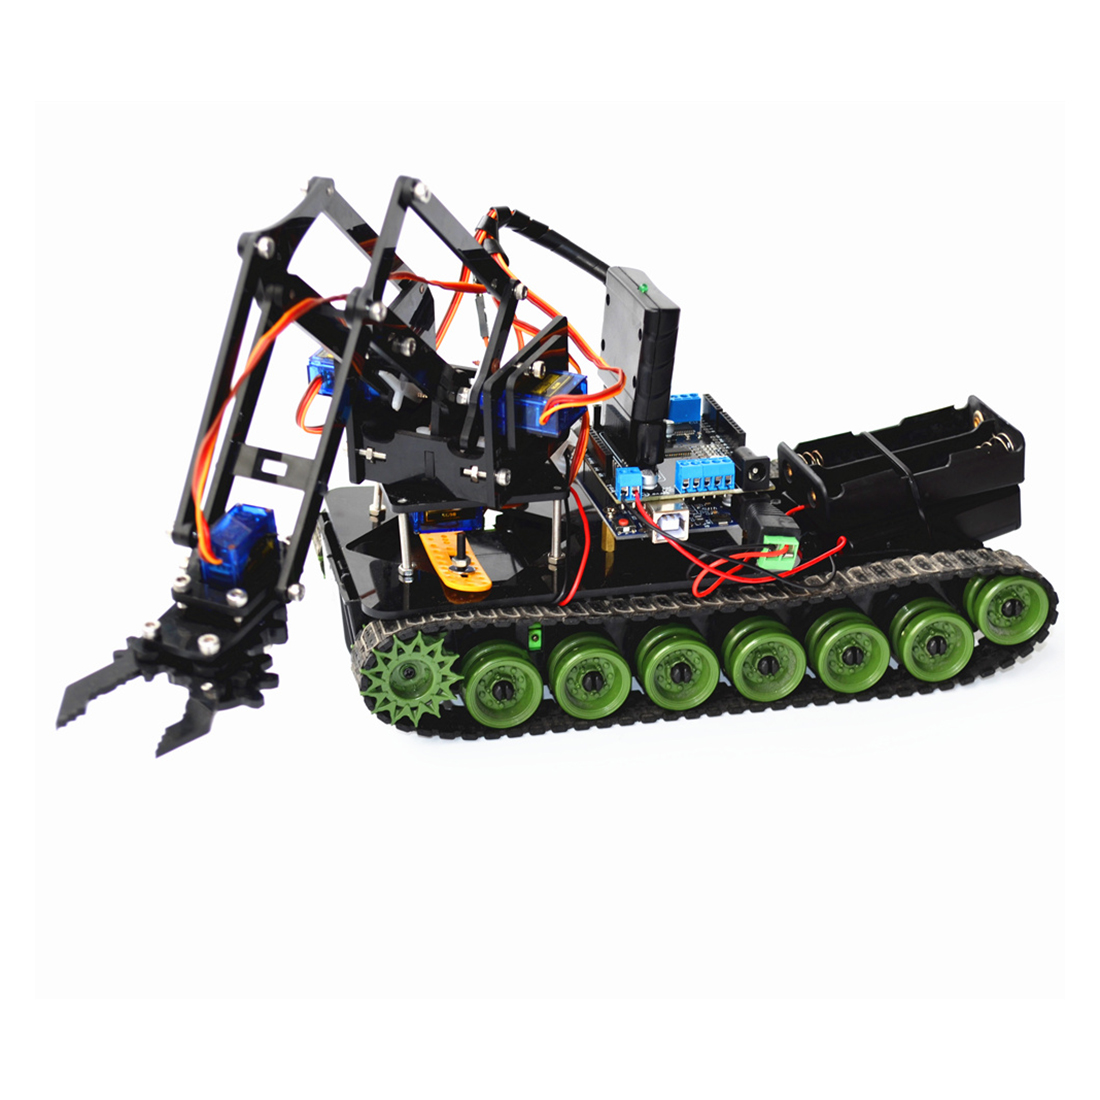 New DIY Programmable Arduino Robot Kit Made With Plastic And Metal Material For Arduino 2